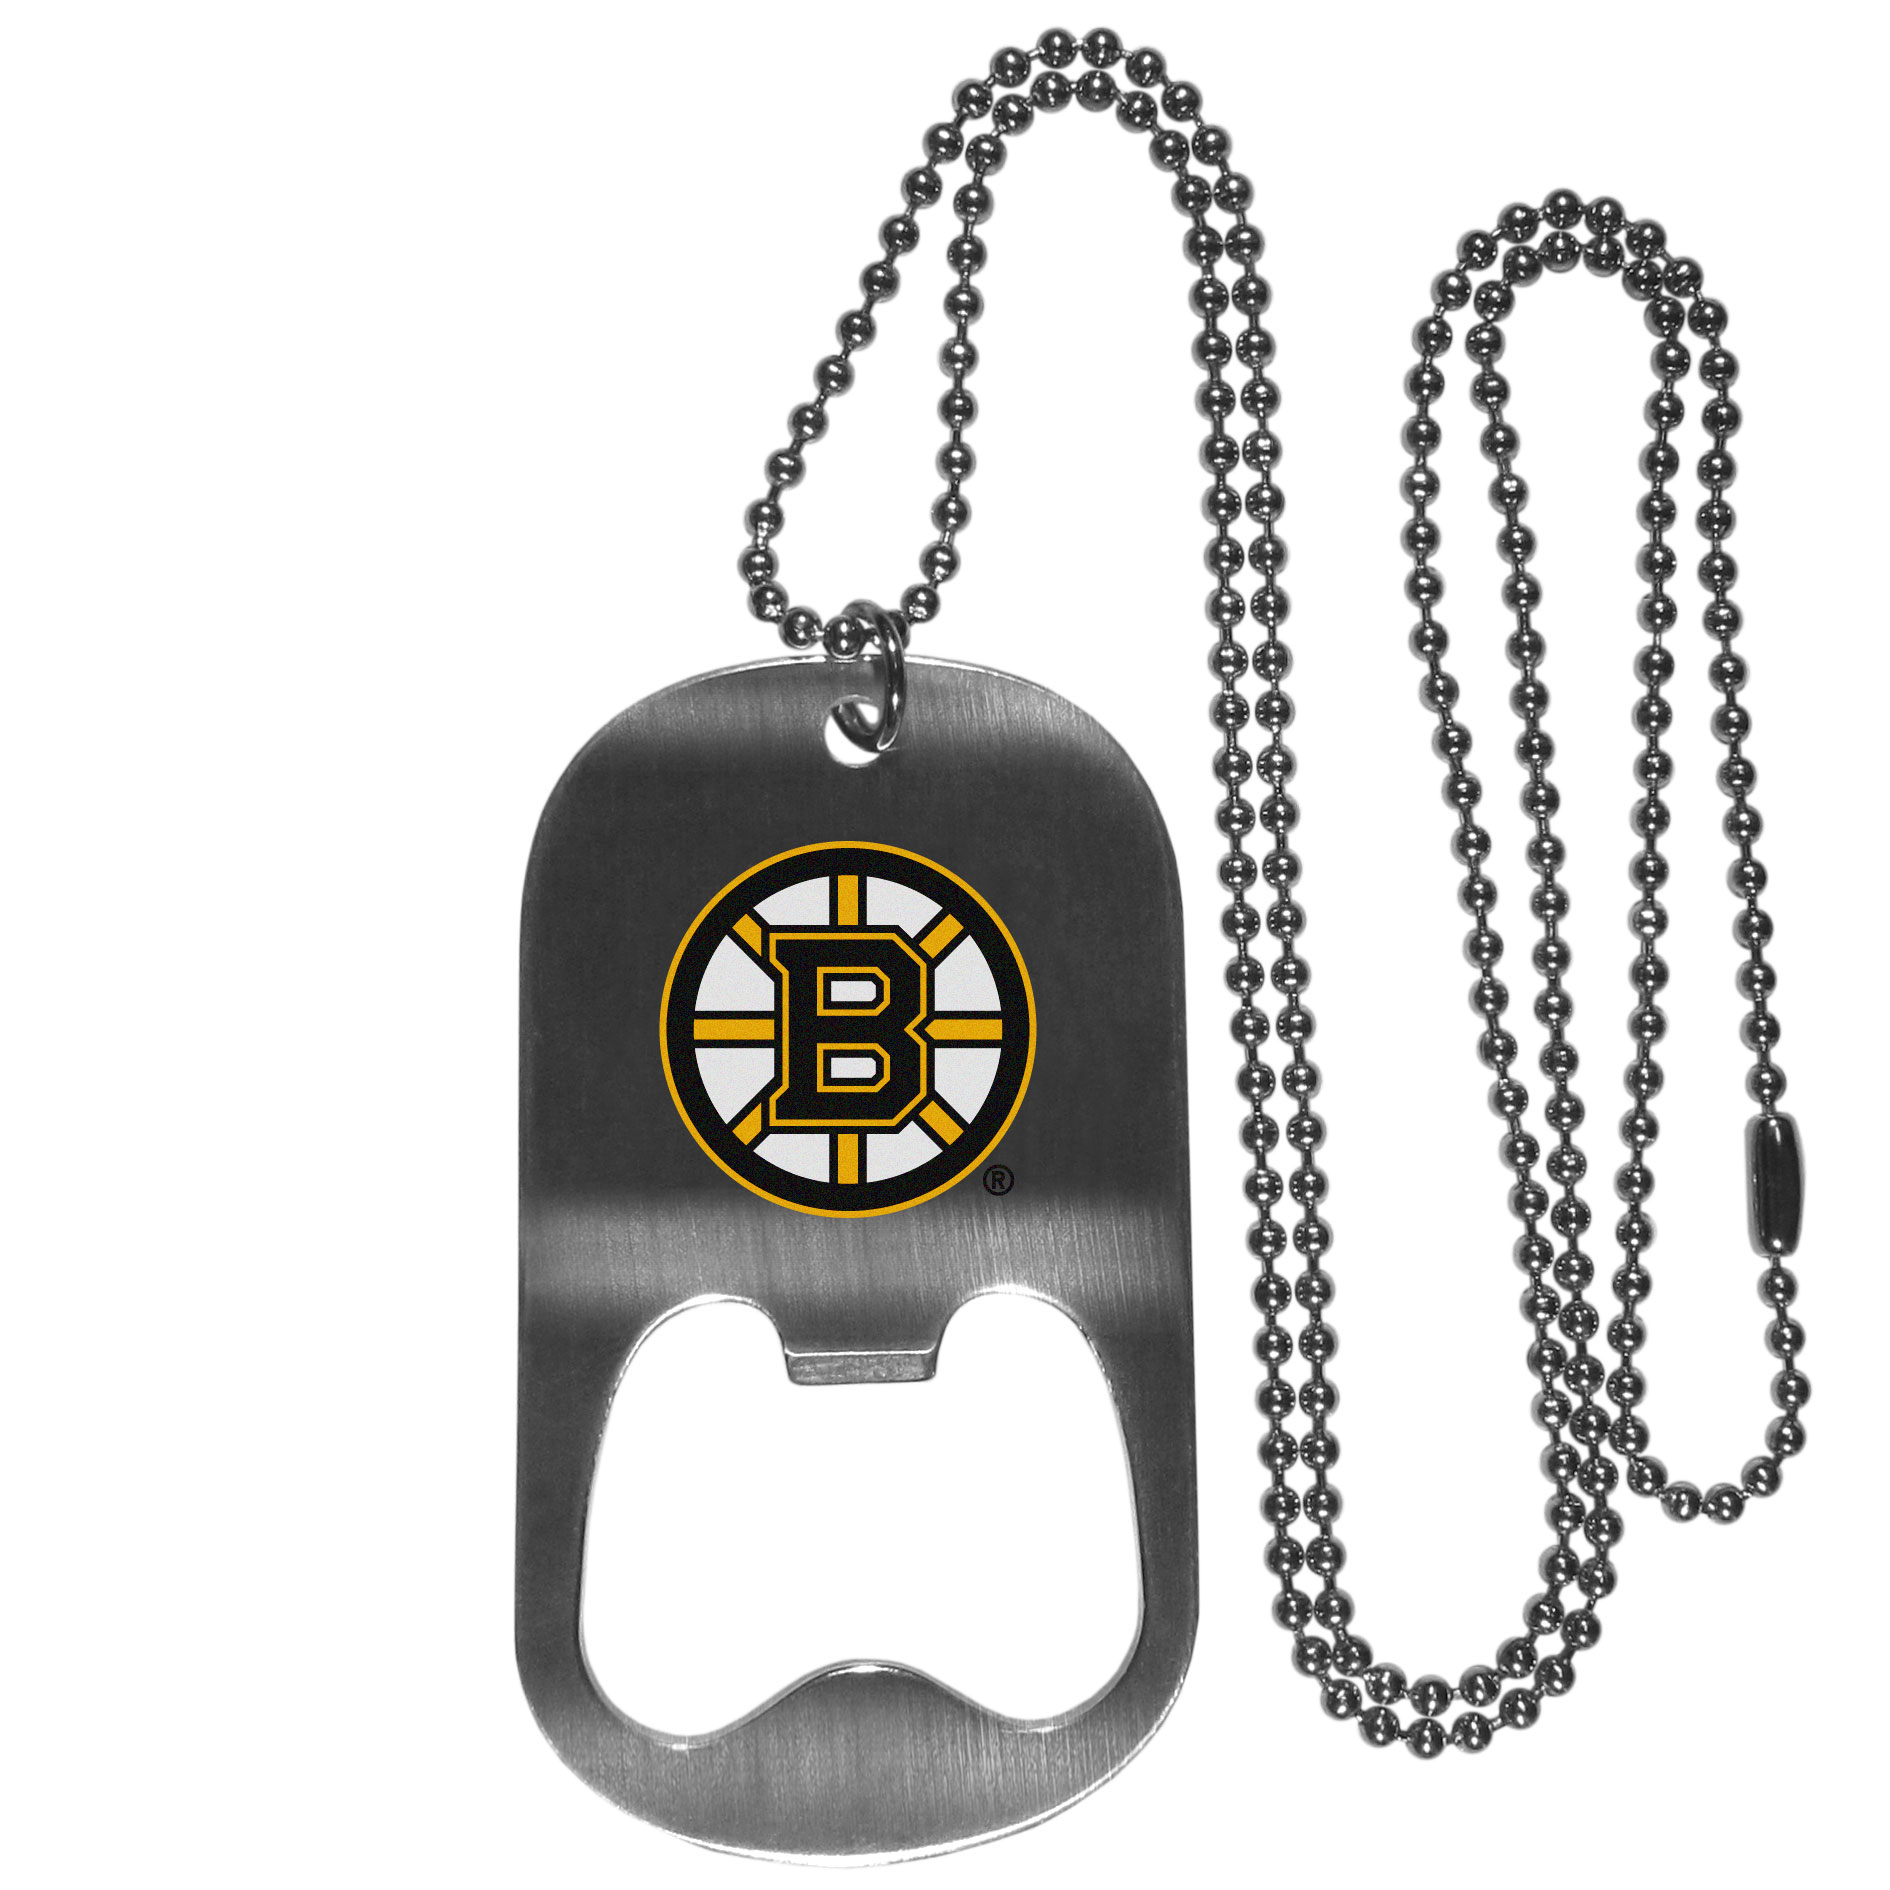 Boston Bruins Bottle Opener Tag Necklace - Our Boston Bruins bottle opener tag necklace has a brushed metal finish and inlaid team logo. The pendant has bottle opener feature and comes on a 20 inch ball chain making the perfect game day accessory!